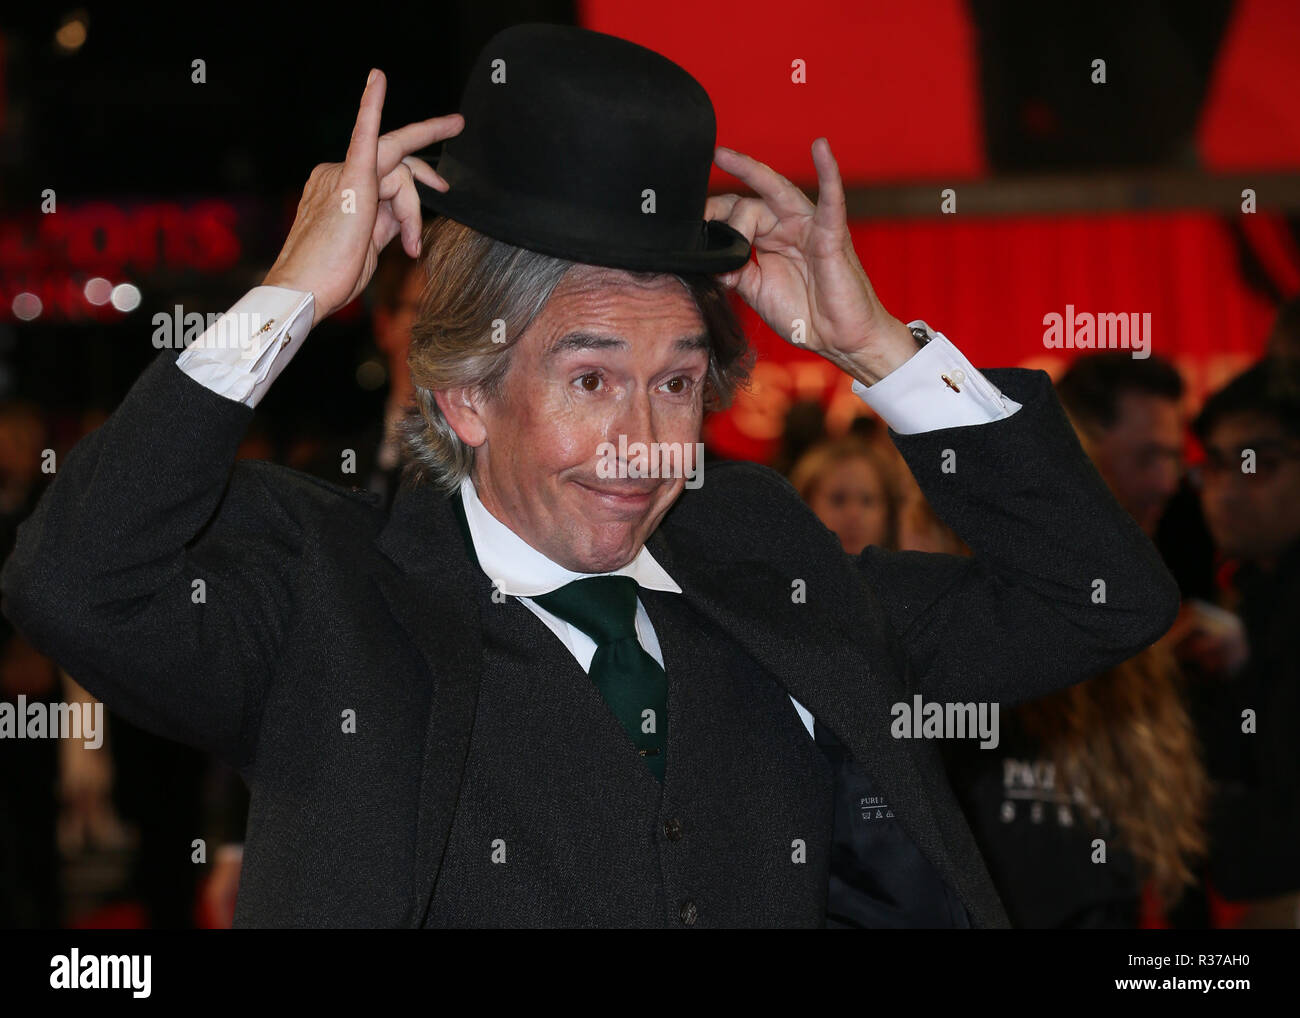 The BFI 62nd London Film Festival World Premiere of 'Stan & Ollie' held at the Cineworld Leicester Square - Arrivals  Featuring: Steve Coogan Where: London, United Kingdom When: 21 Oct 2018 Credit: Mario Mitsis/WENN.com Stock Photo